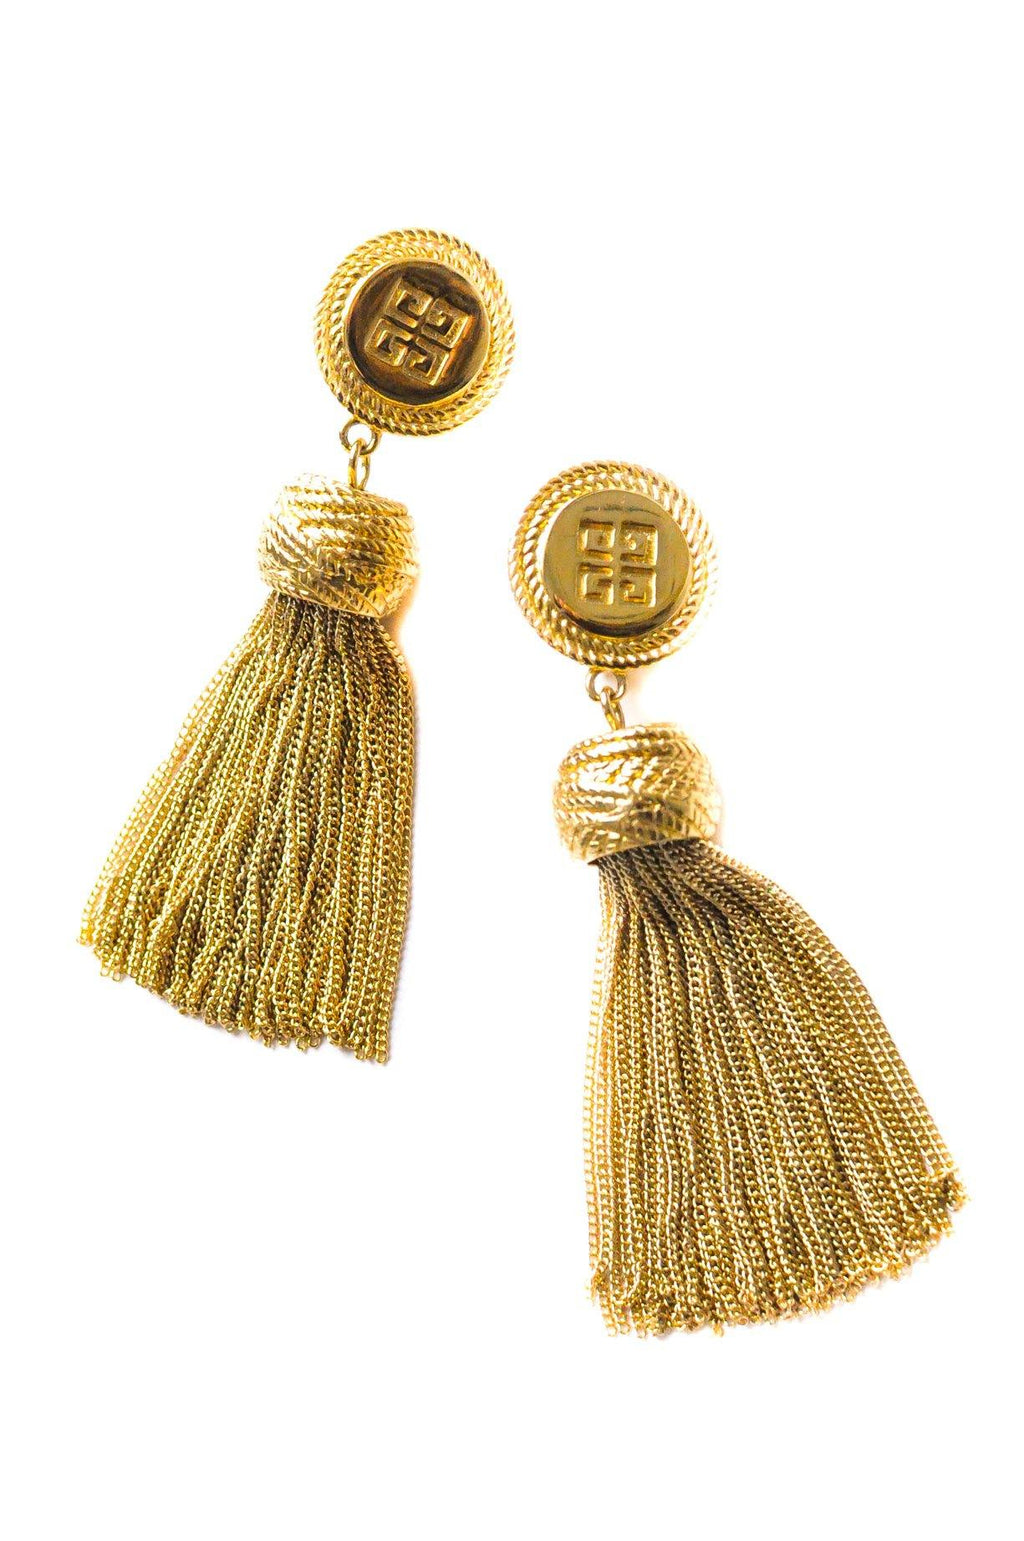 Givenchy Tassel Clip-on Earrings